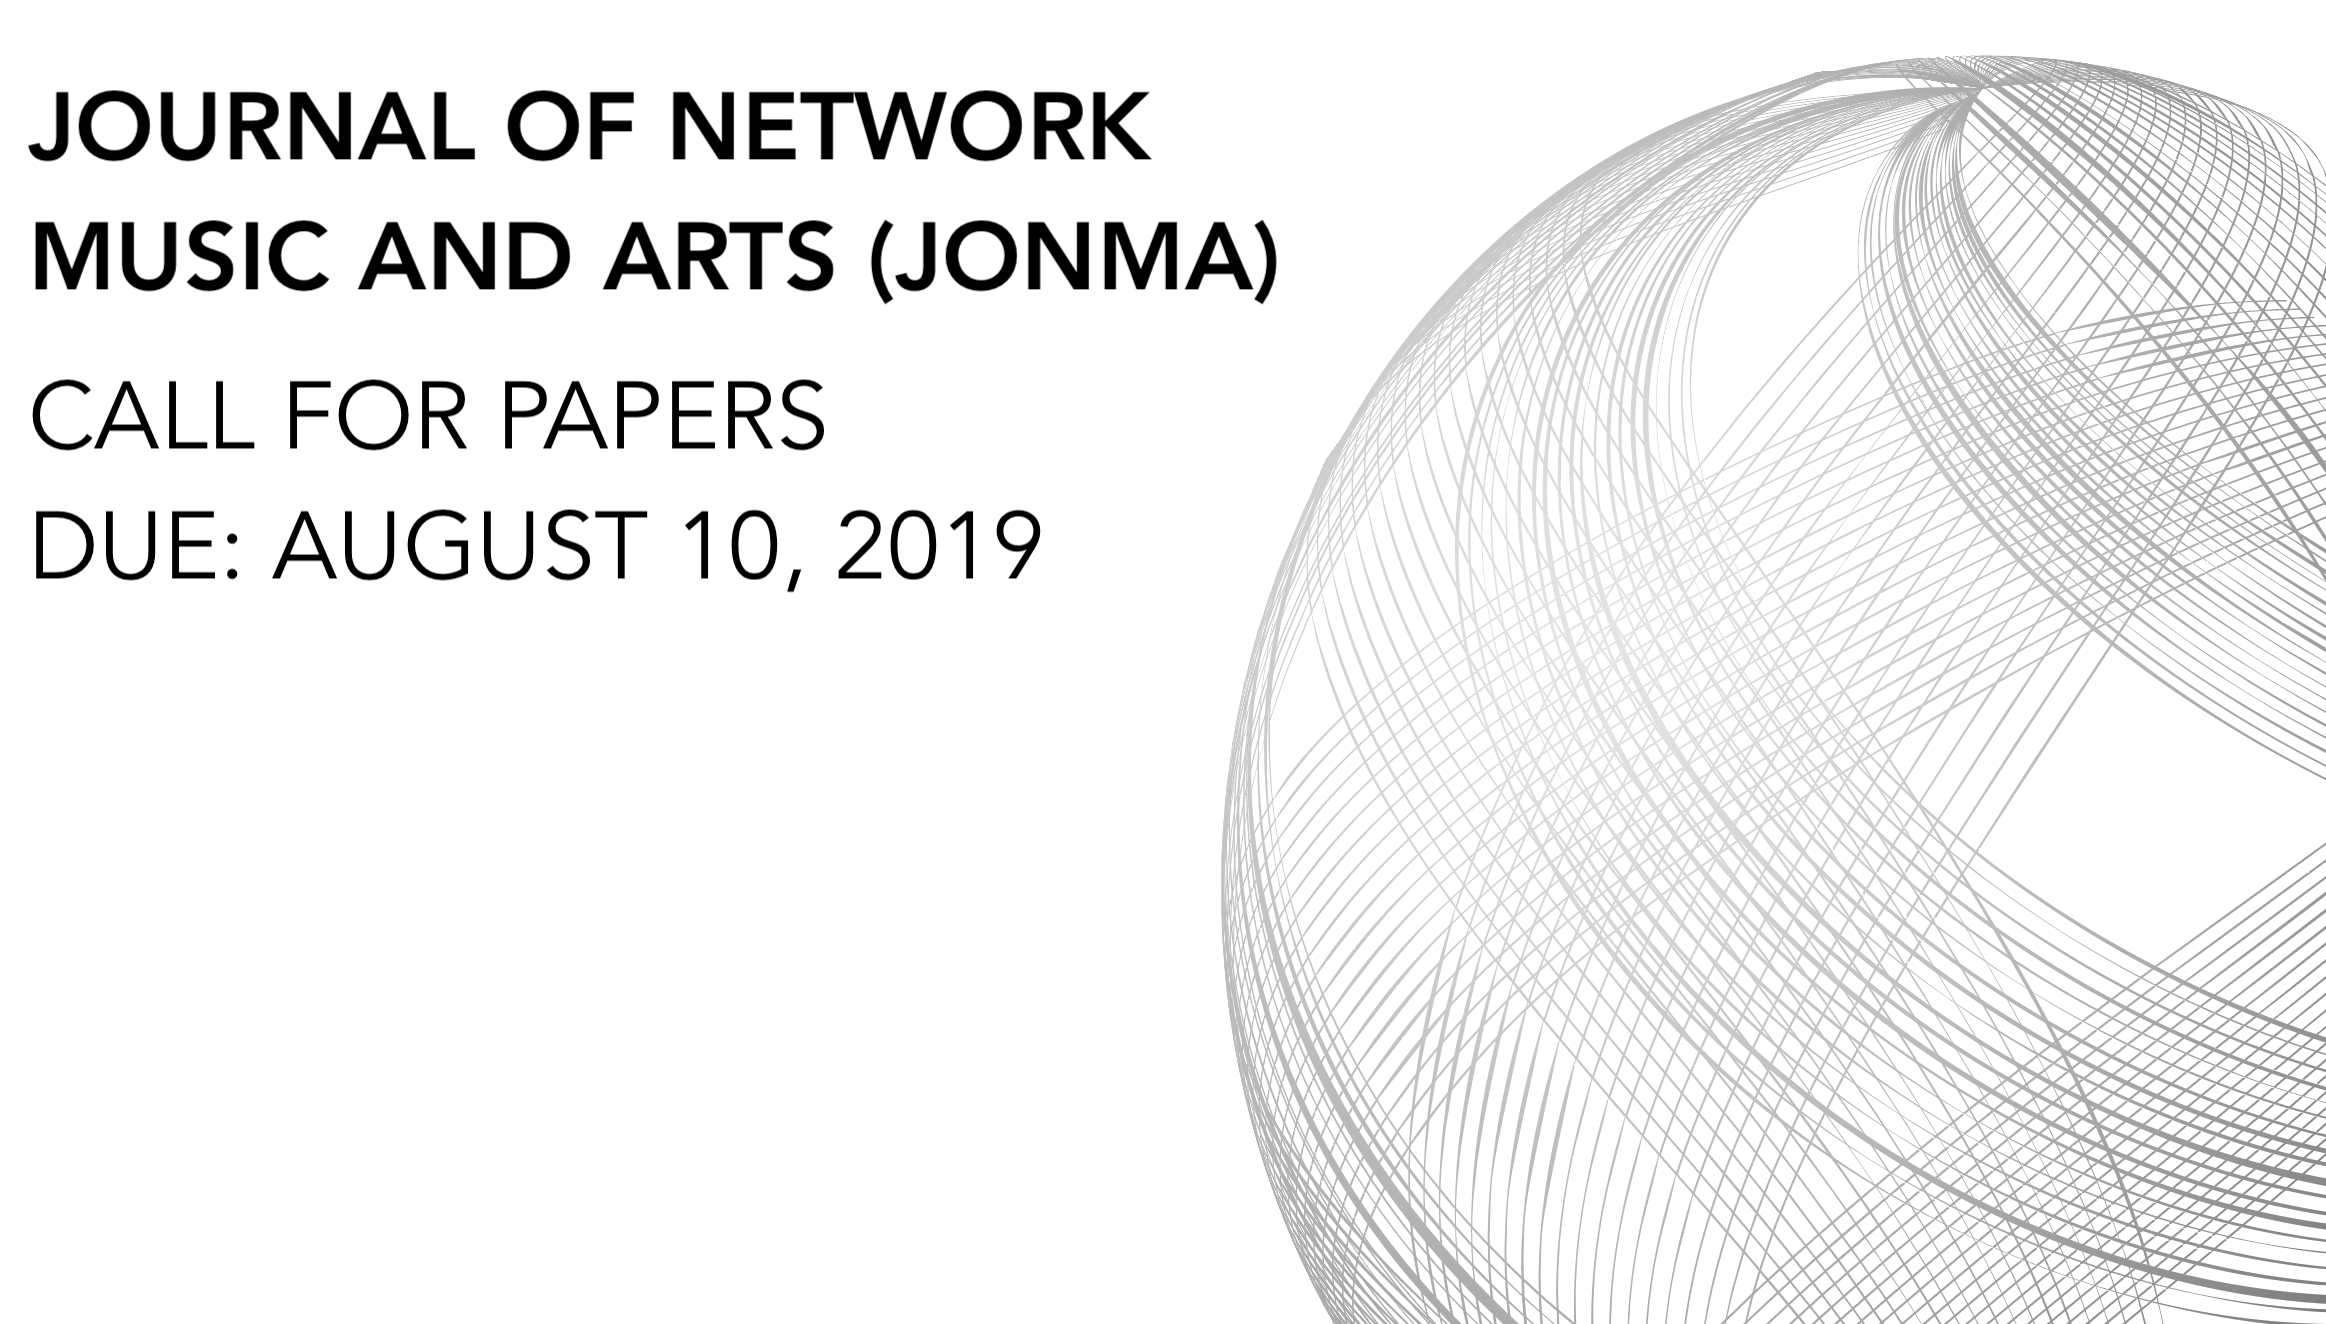 Call for Papers: Journal of Network Music and arts (jonma) - DUE: AUGUST 10, 2019